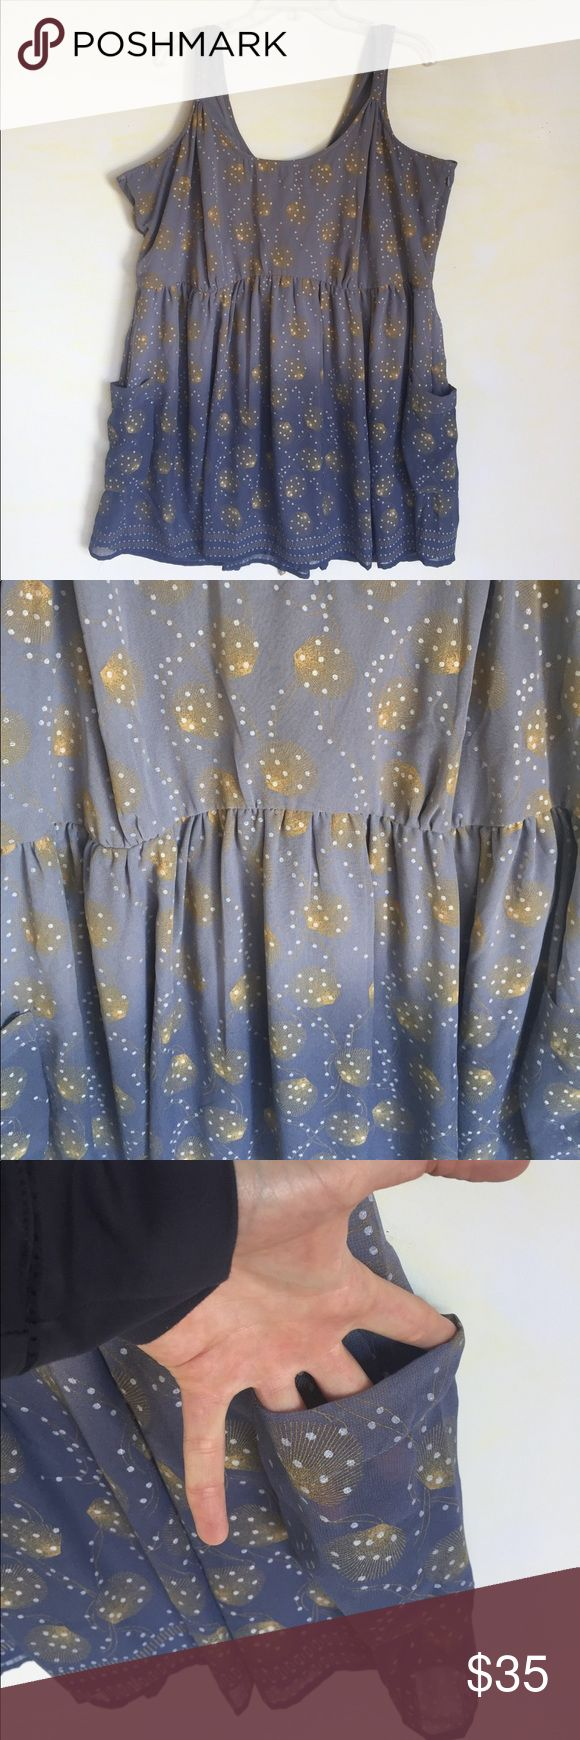 Joe Browns Blue & Gold Dress, Size 22 This darling Joe Browns Blue & Gold Dress, Size 22 practically glows in the light and will keep you glowing while wearing it  EXCELLENT CONDITION, NO DEFECTS & COMES FROM A SMOKE FREE HOME. Joe Browns Dresses Midi